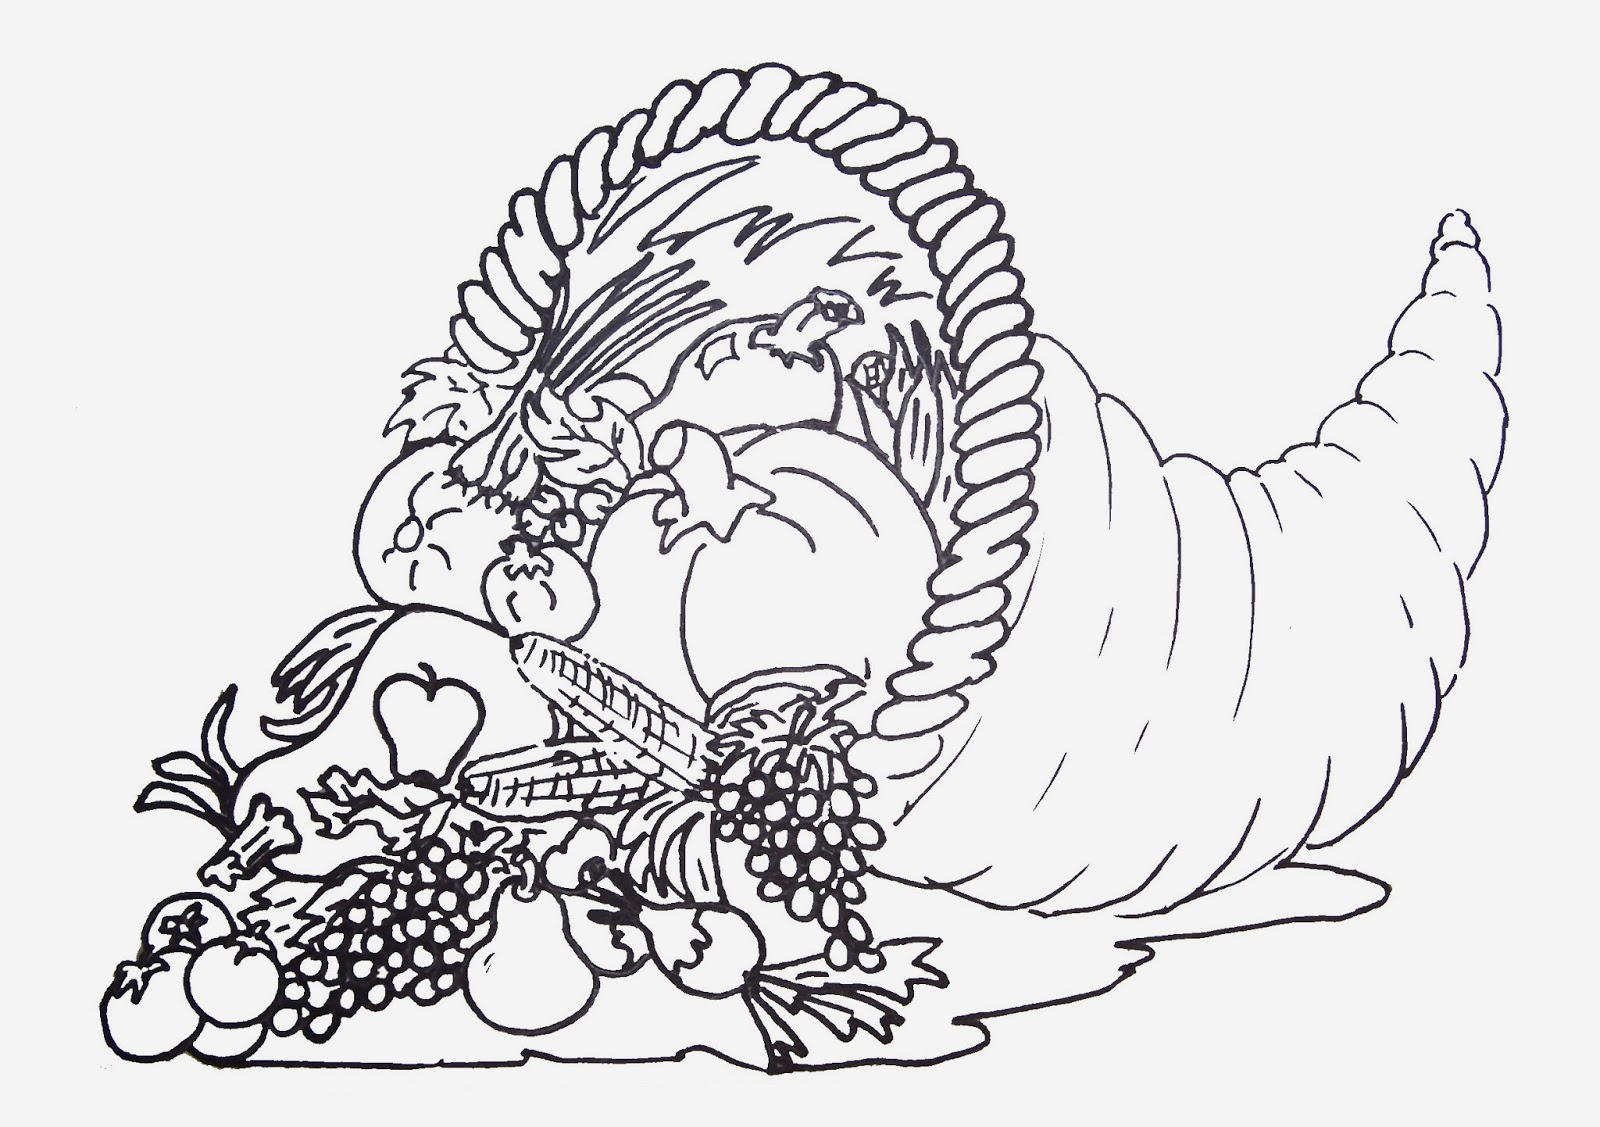 Printable adult thanksgiving coloring sheet - Free Printable Coloring Page Of Cornucopia To Download